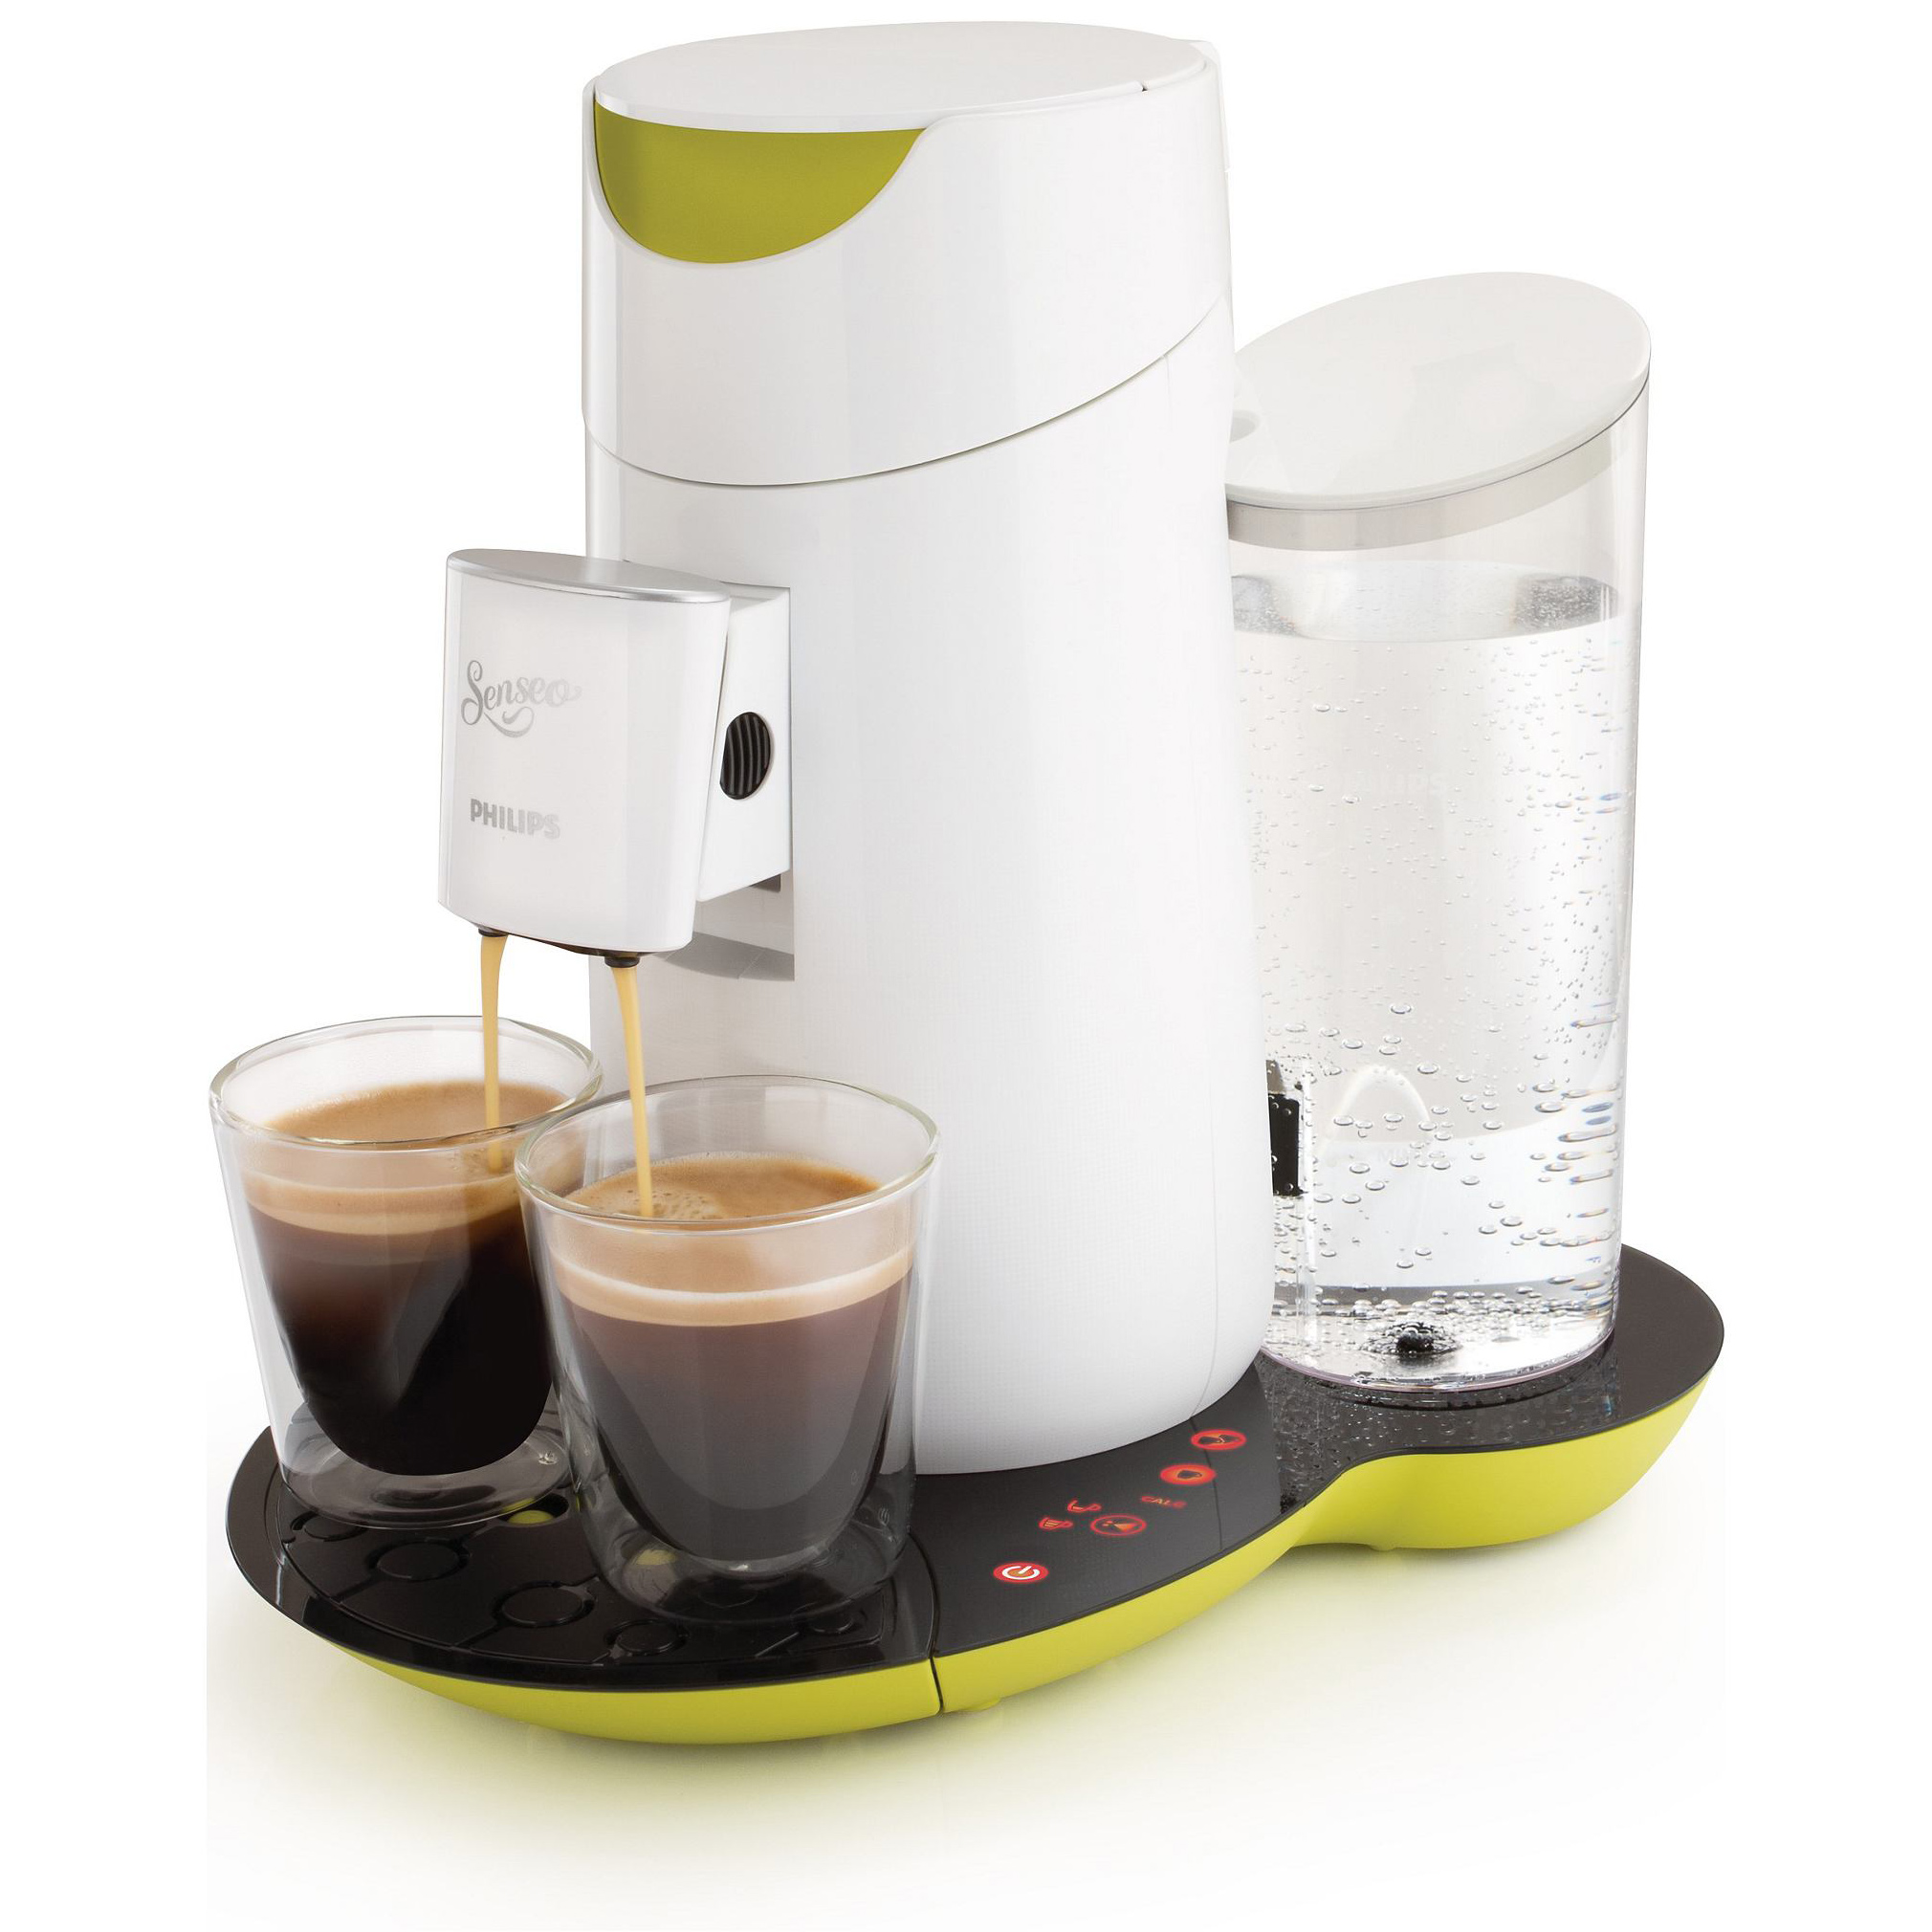 philips senseo twist coffee pod machine hd7870 10 lime yellow white at about shop. Black Bedroom Furniture Sets. Home Design Ideas